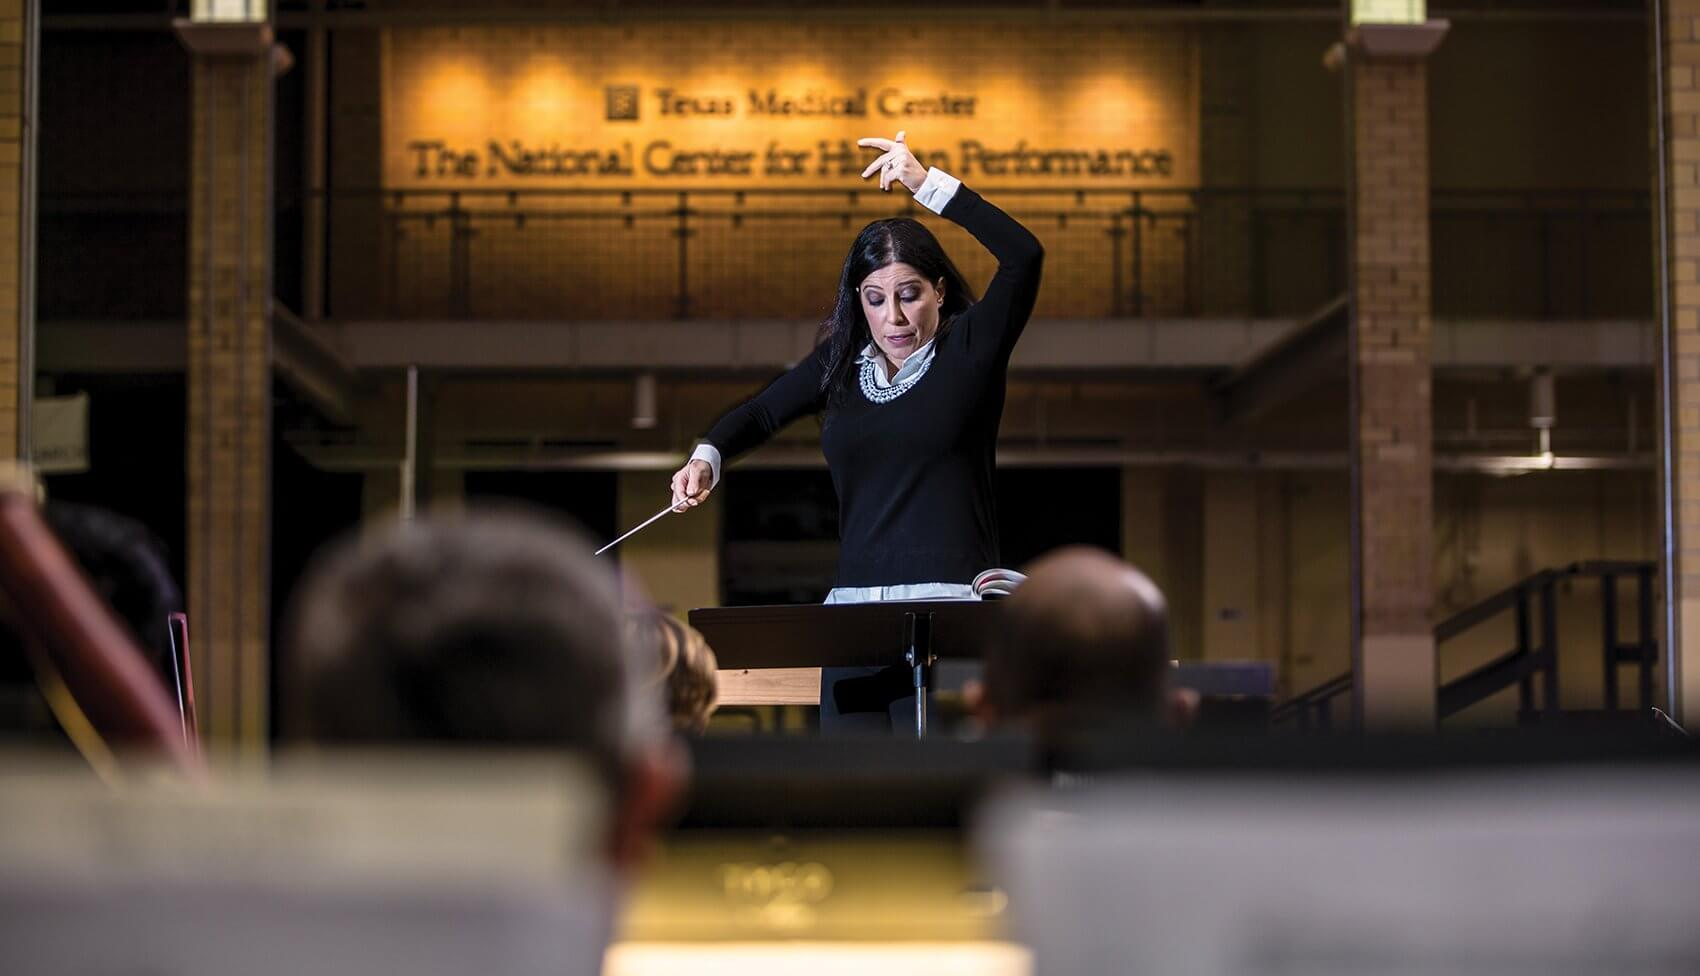 Libi Lebel founded the Texas Medical Center Orchestra and has been directing it ever since.